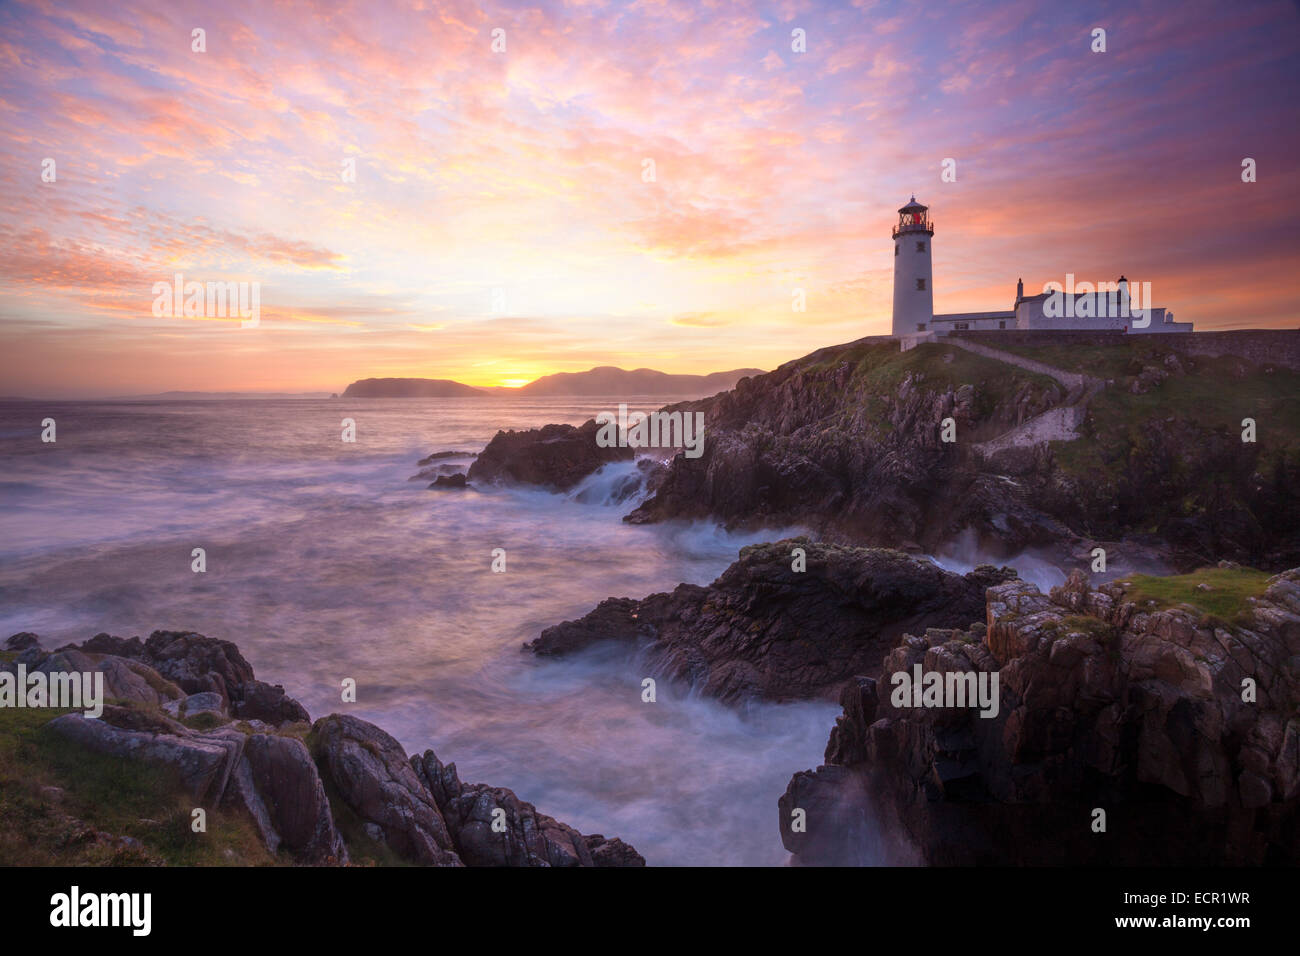 Tramonto su Fanad Head Lighthouse, Fanad Head, County Donegal, Irlanda. Immagini Stock